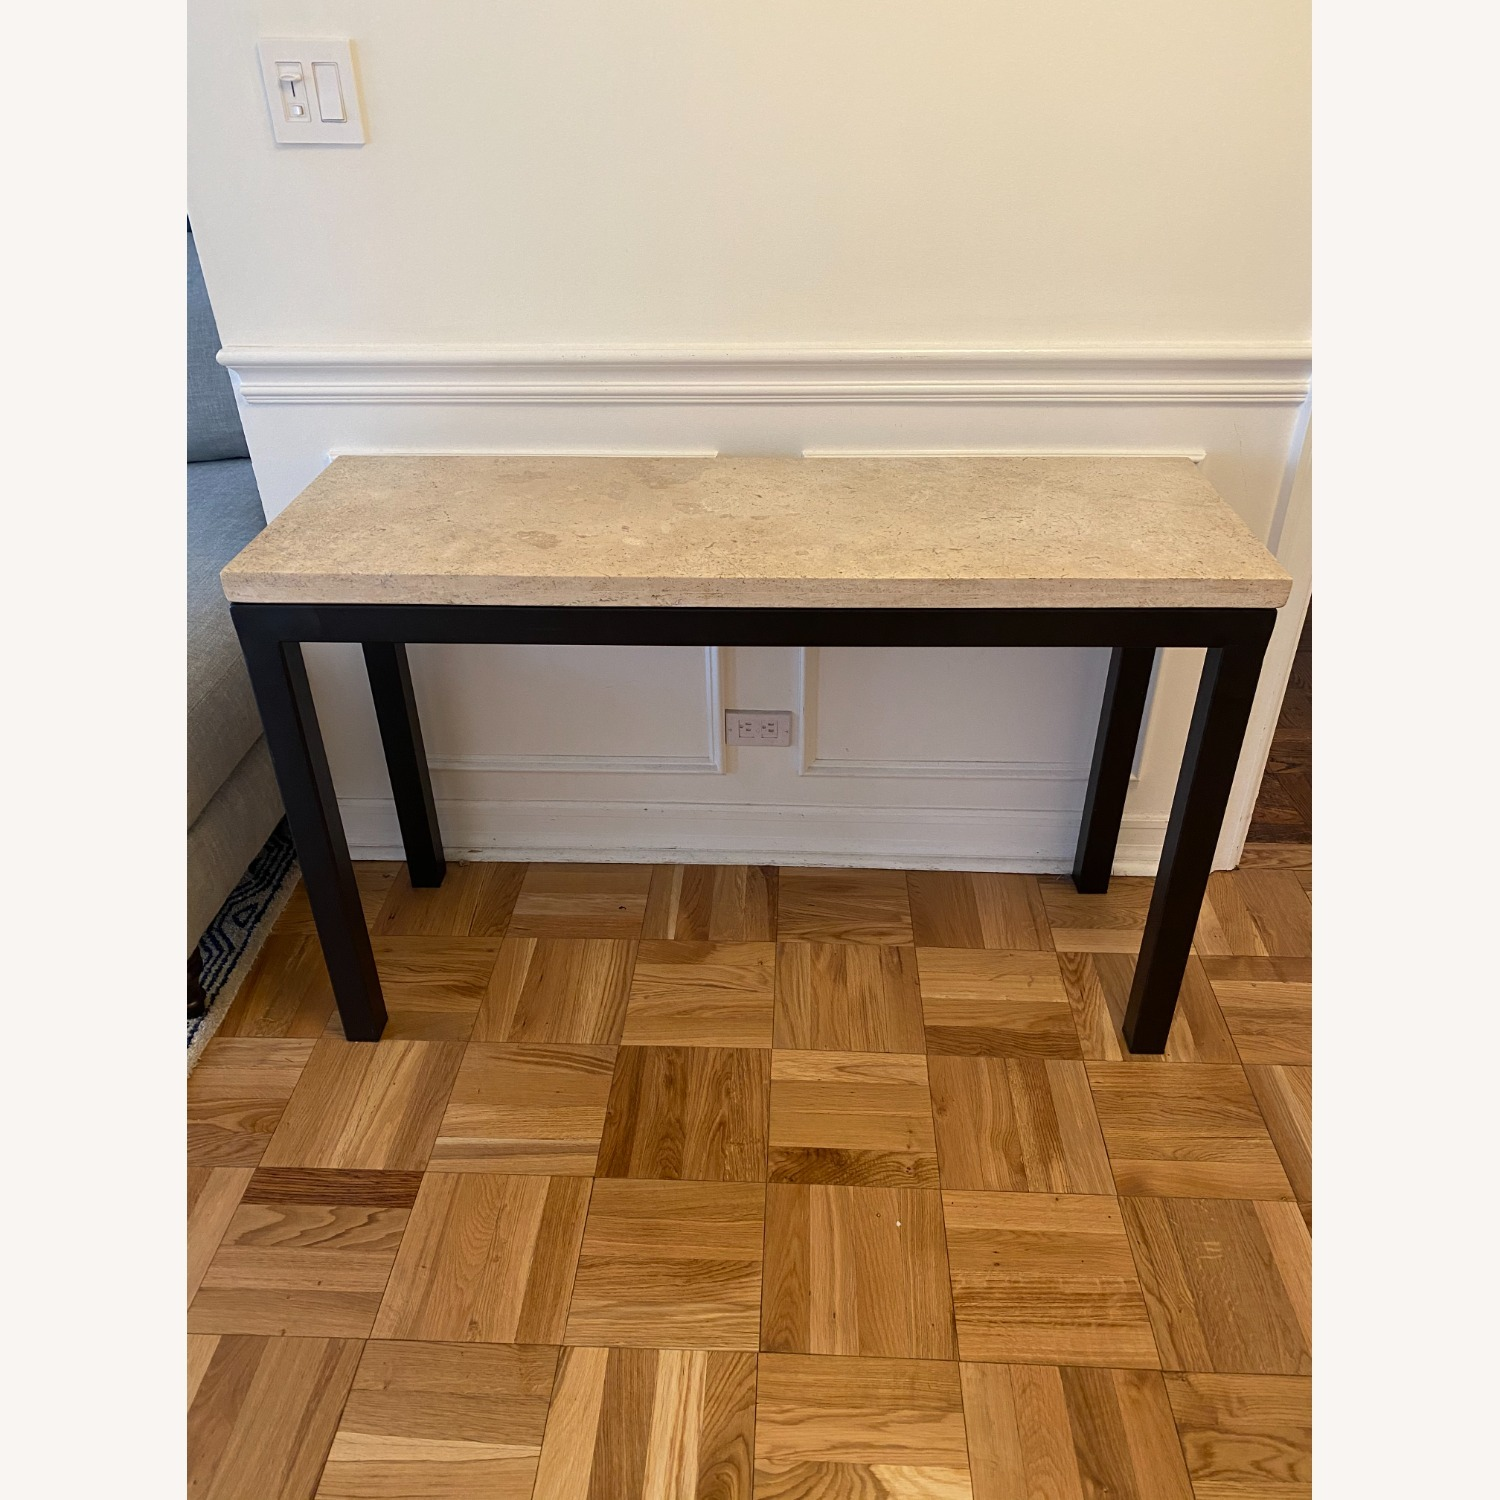 Crate & Barrel Parsons Console Table - image-1